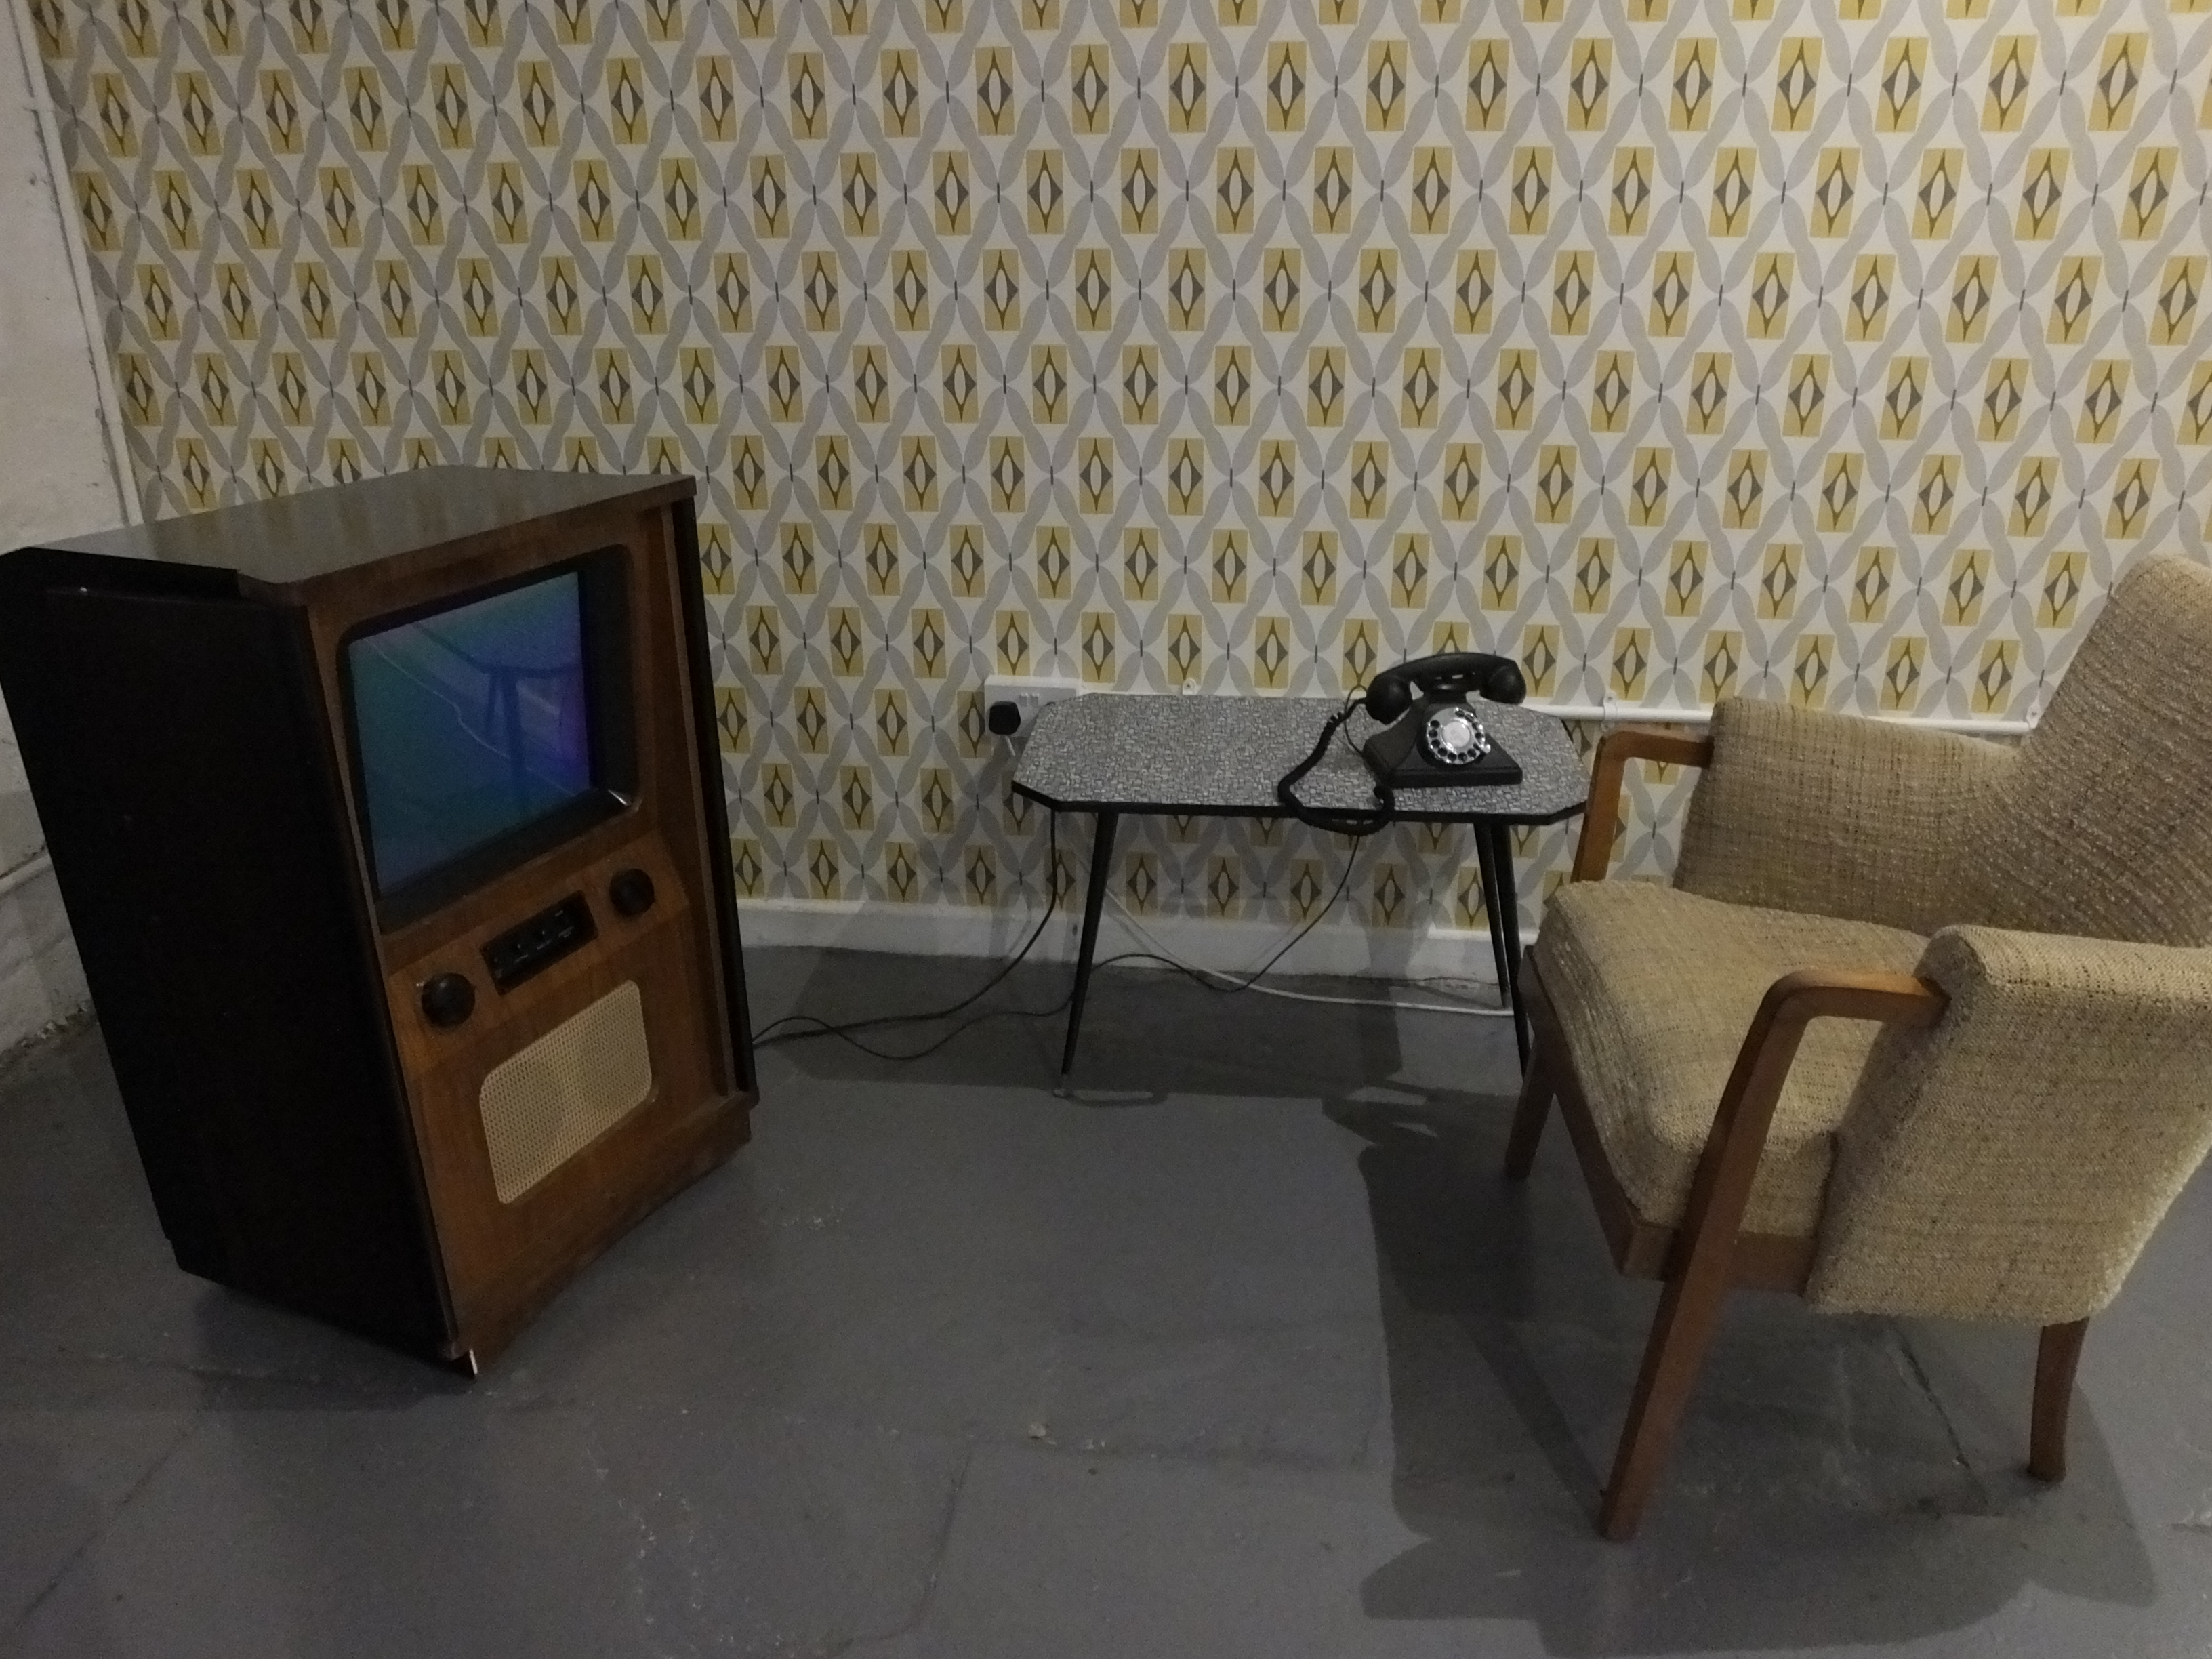 File:Leeds Industrial Museum Living Room 1950 TV And Phone 7092.JPG